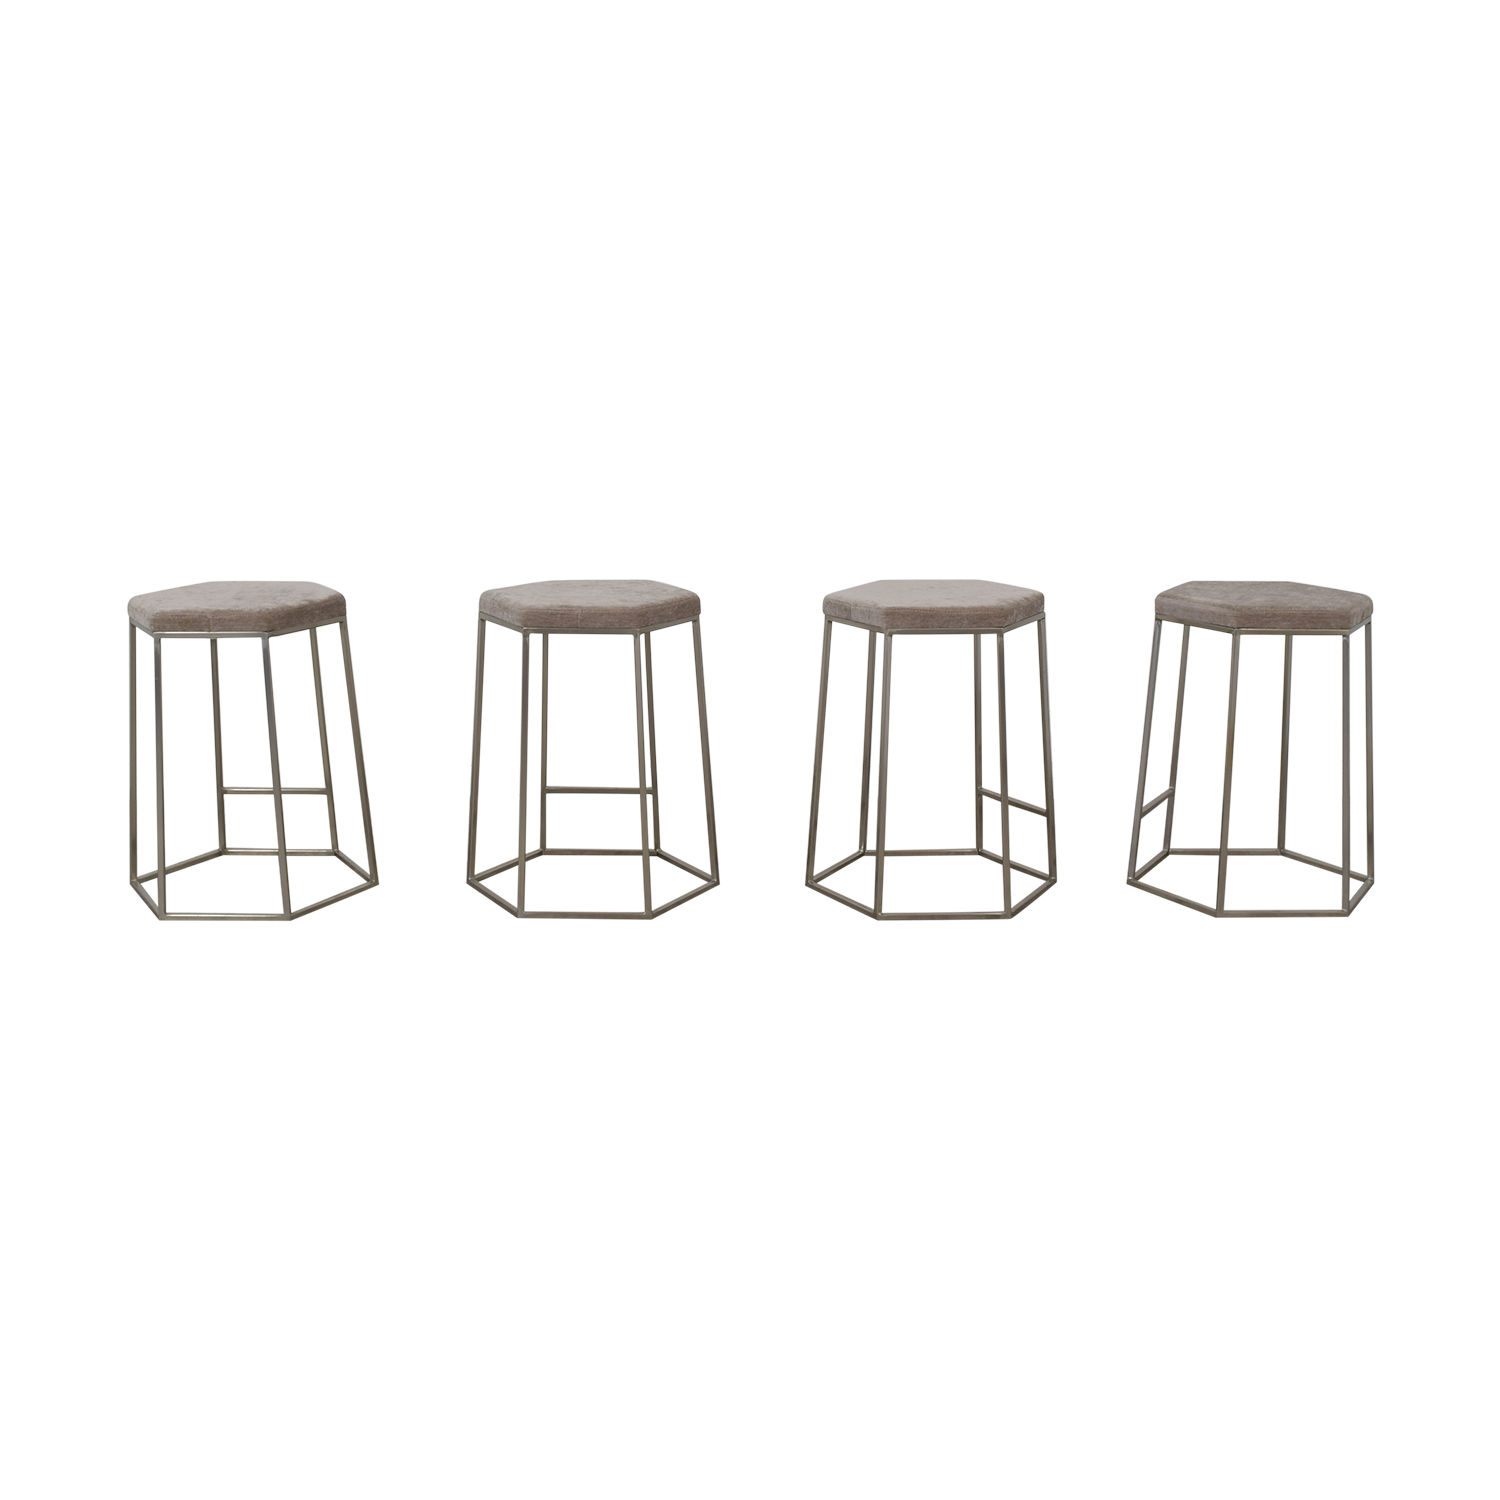 CB2 CB2 Hex Champagne Grey Bar Stools for sale